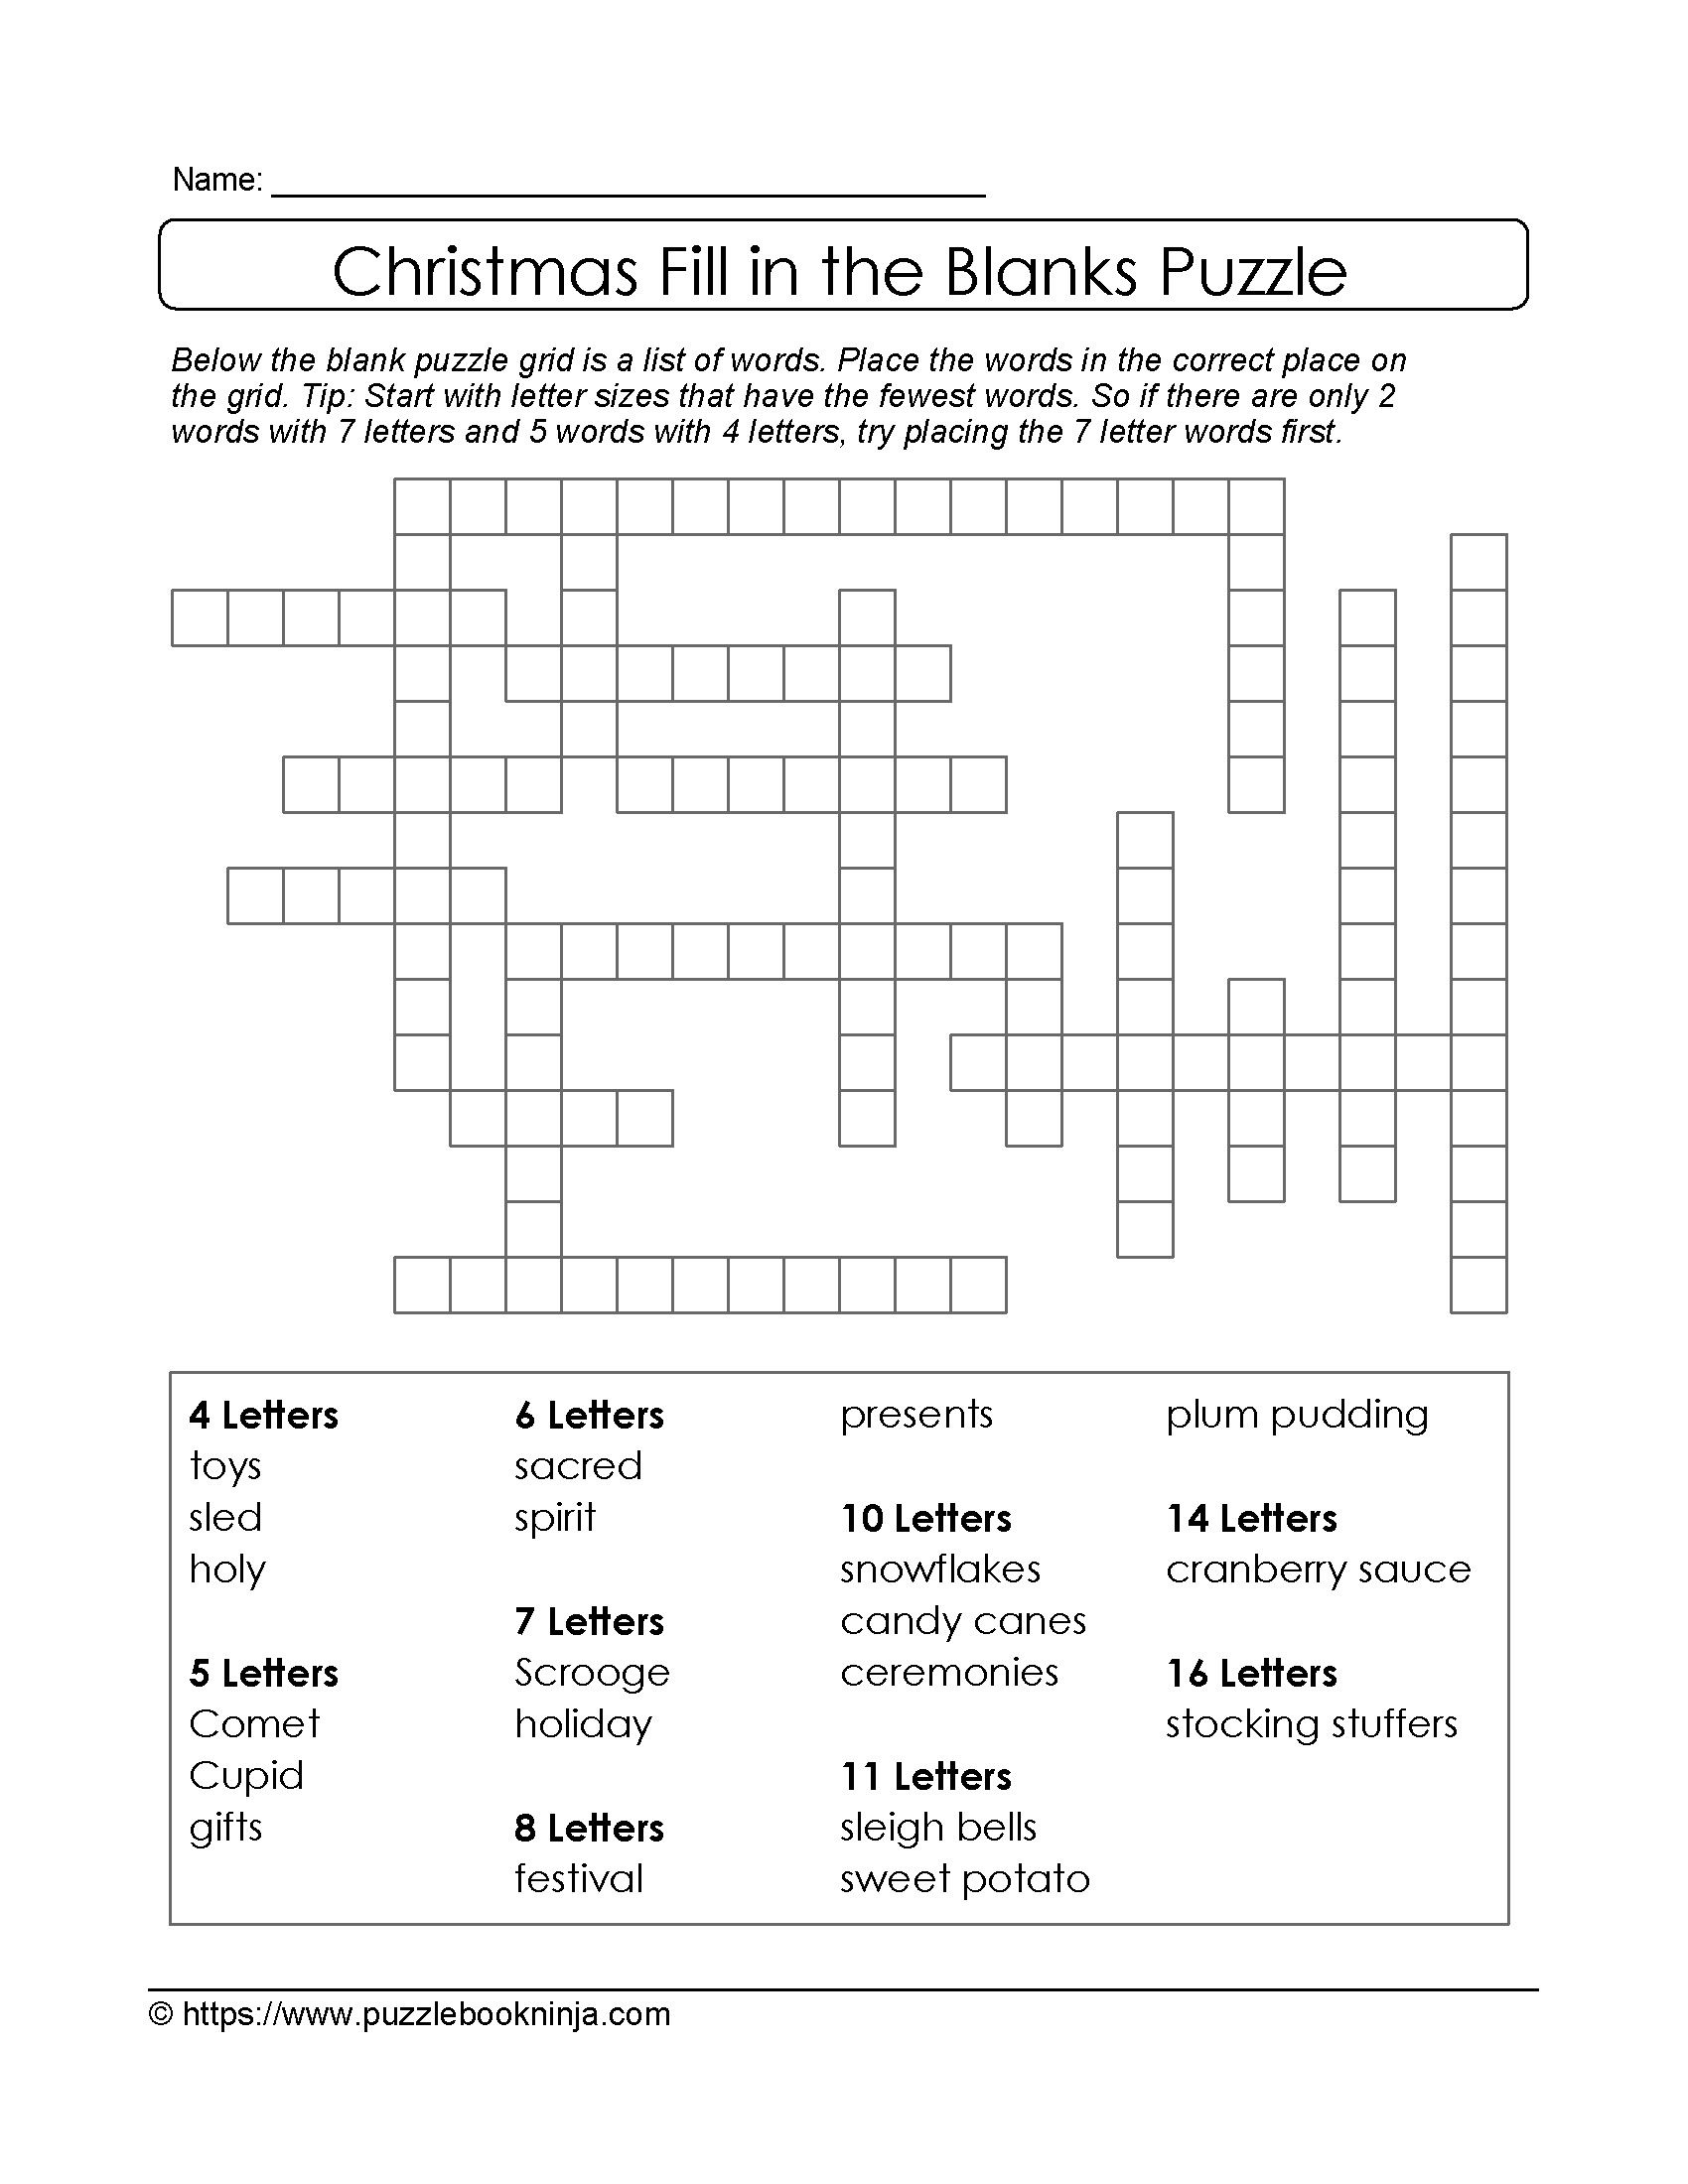 Puzzles To Print. Free Xmas Theme Fill In The Blanks Puzzle - Printable Holiday Puzzle